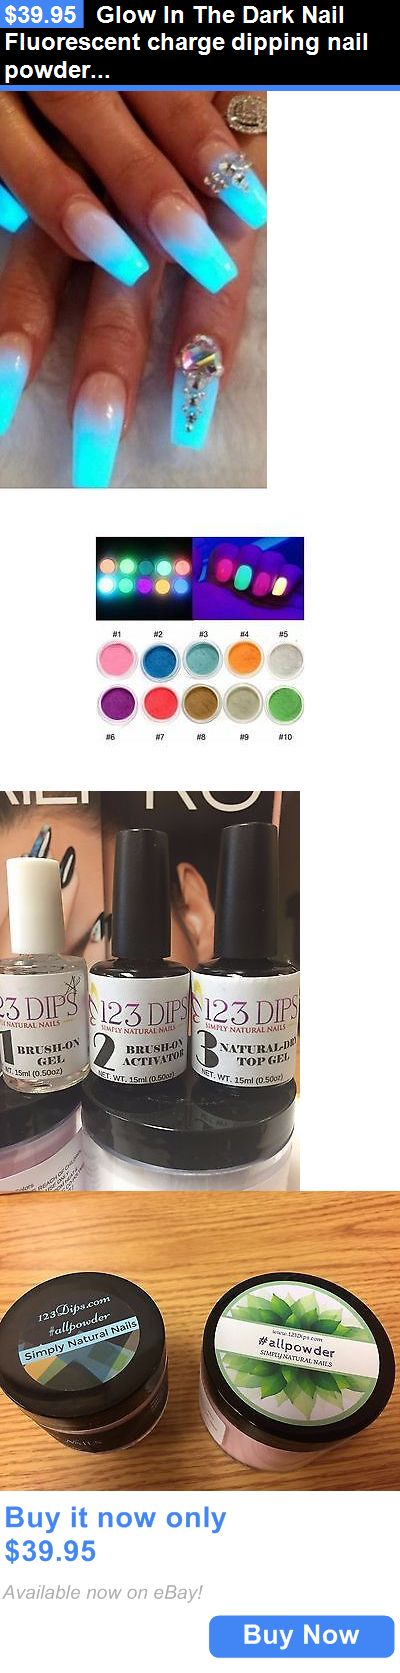 Nail Art Accessories: Glow In The Dark Nail Fluorescent Charge Dipping Nail Powder Kit 4 Piece Set BUY IT NOW ONLY: $39.95